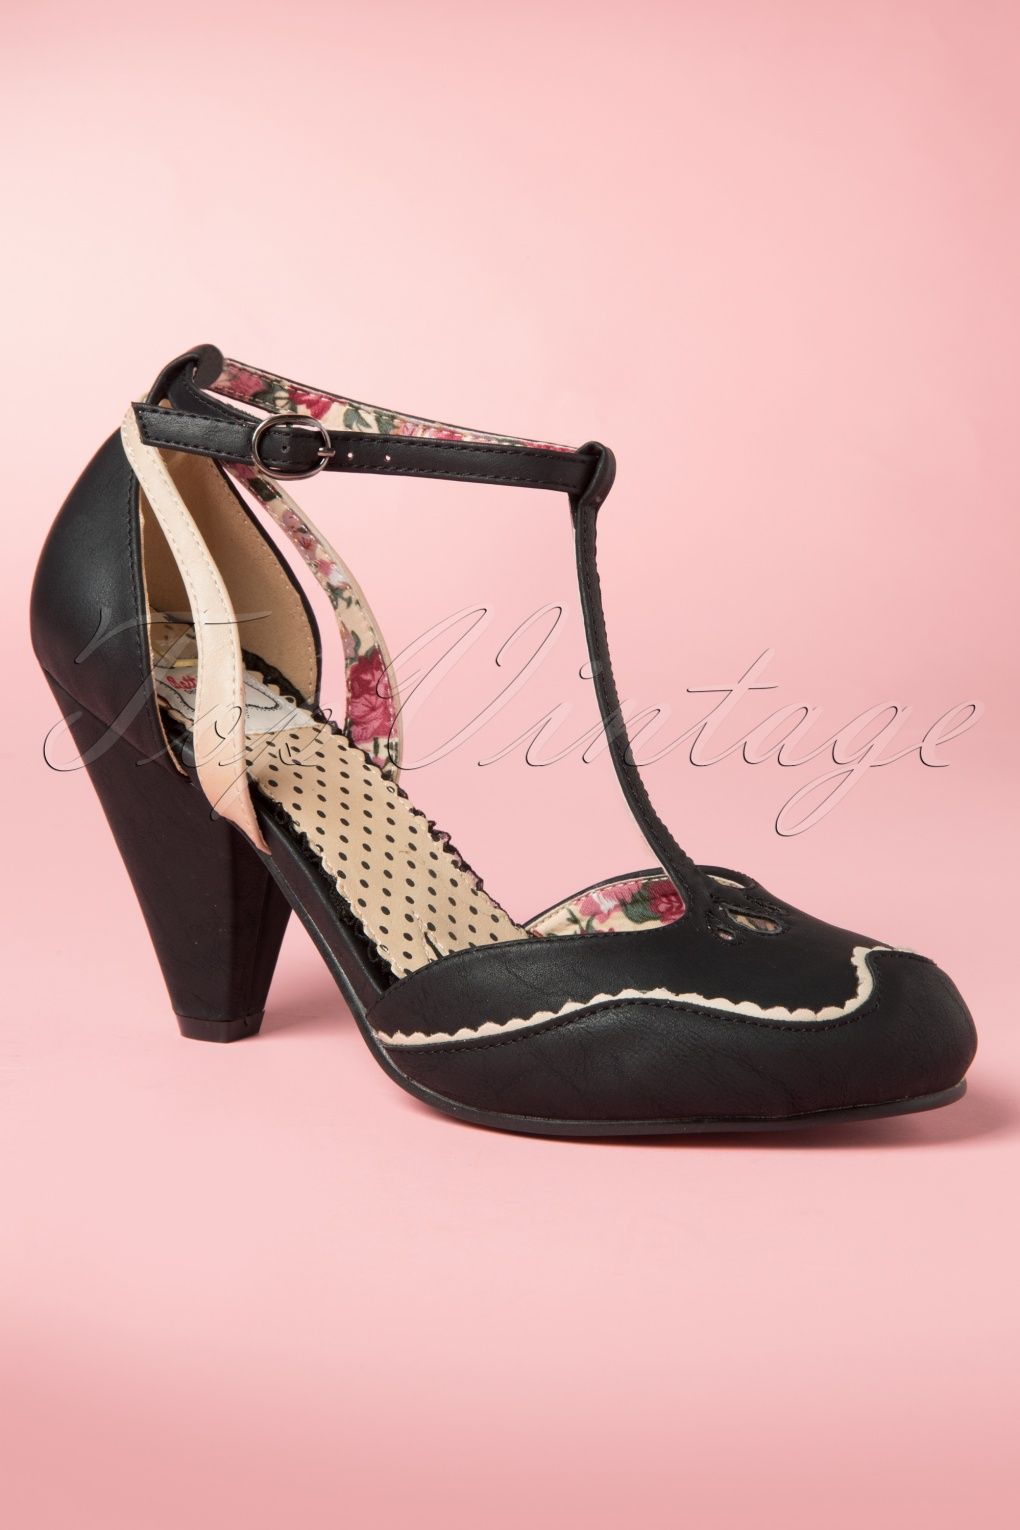 Bettie Page Shoe Sizing